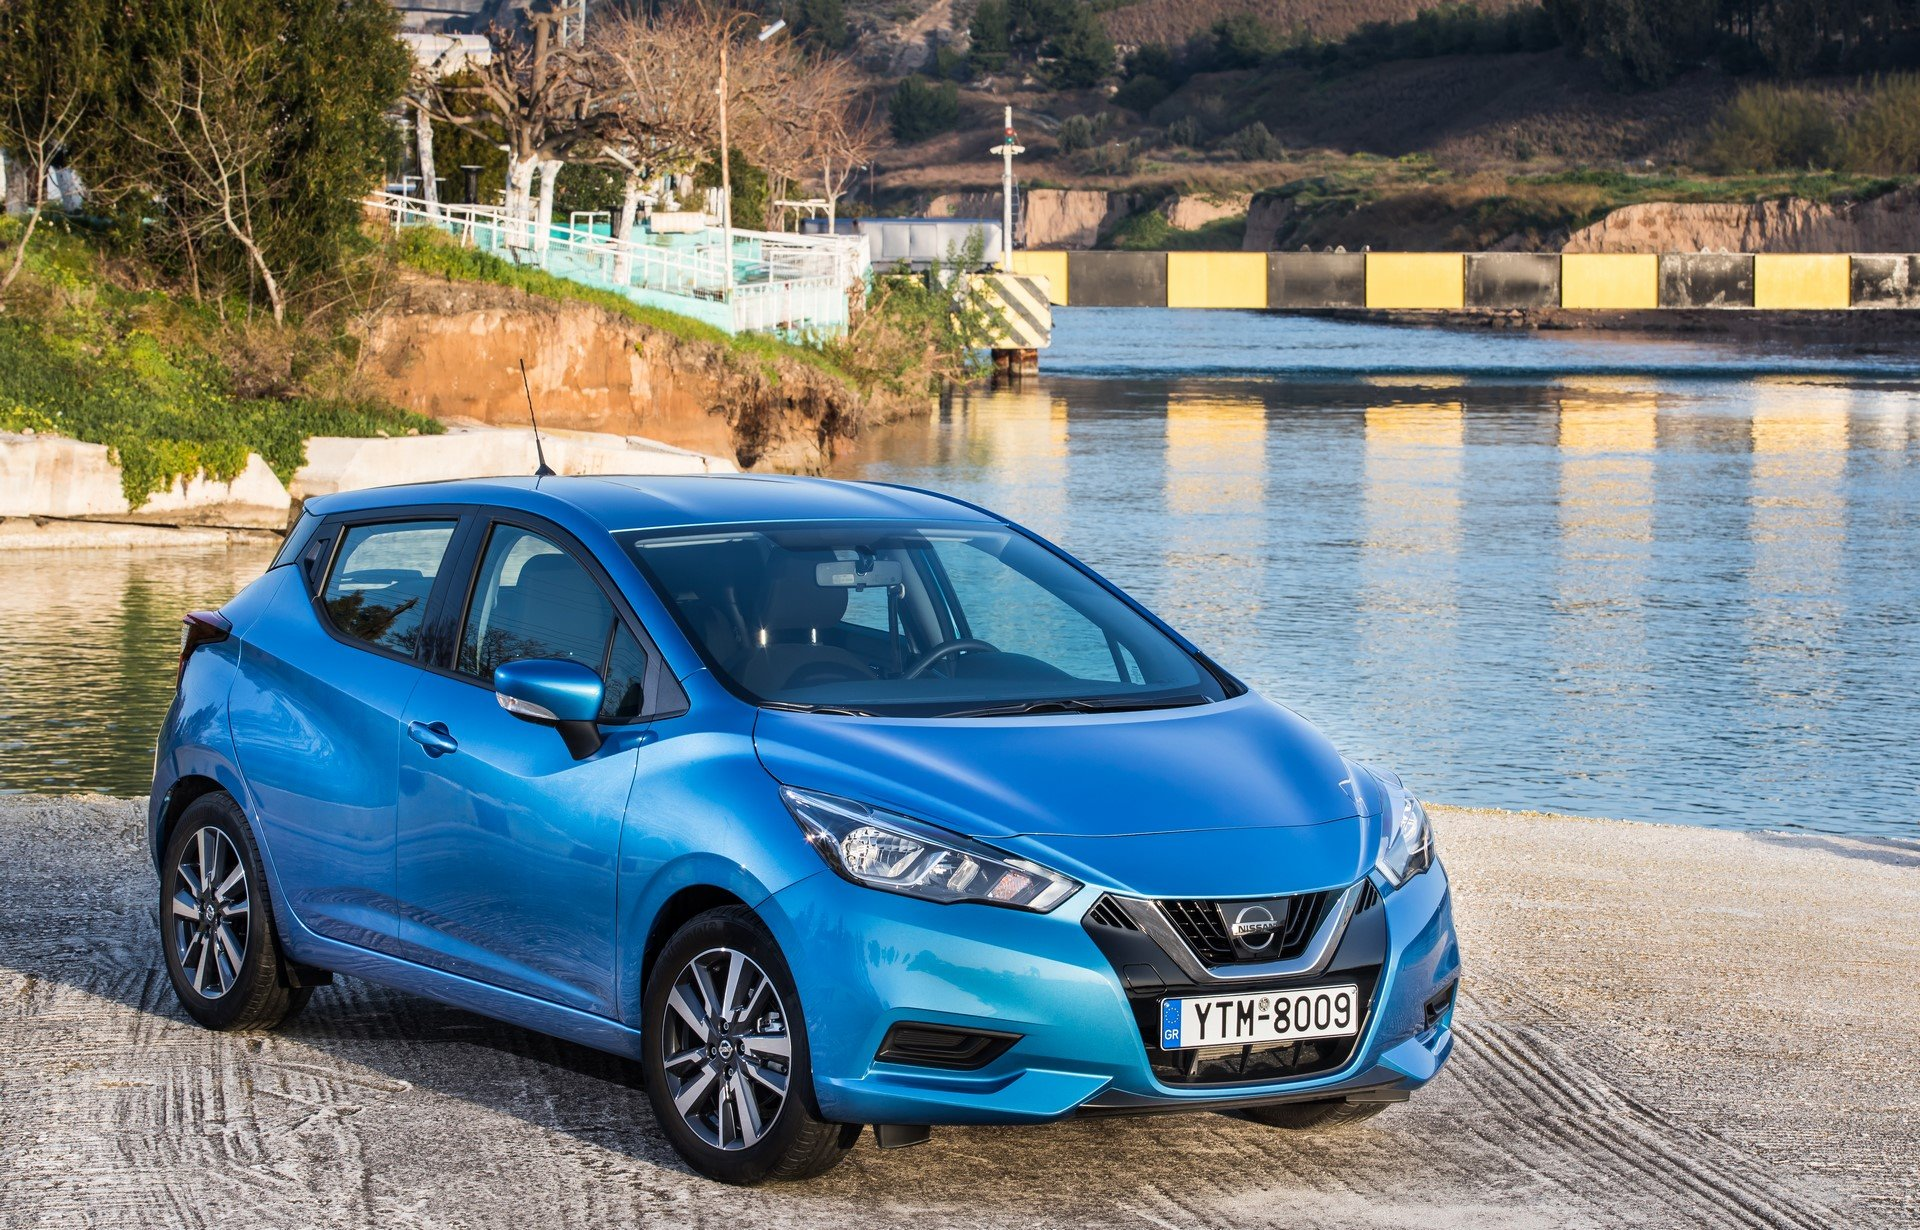 Nissan Micra 2019 Greek (20)